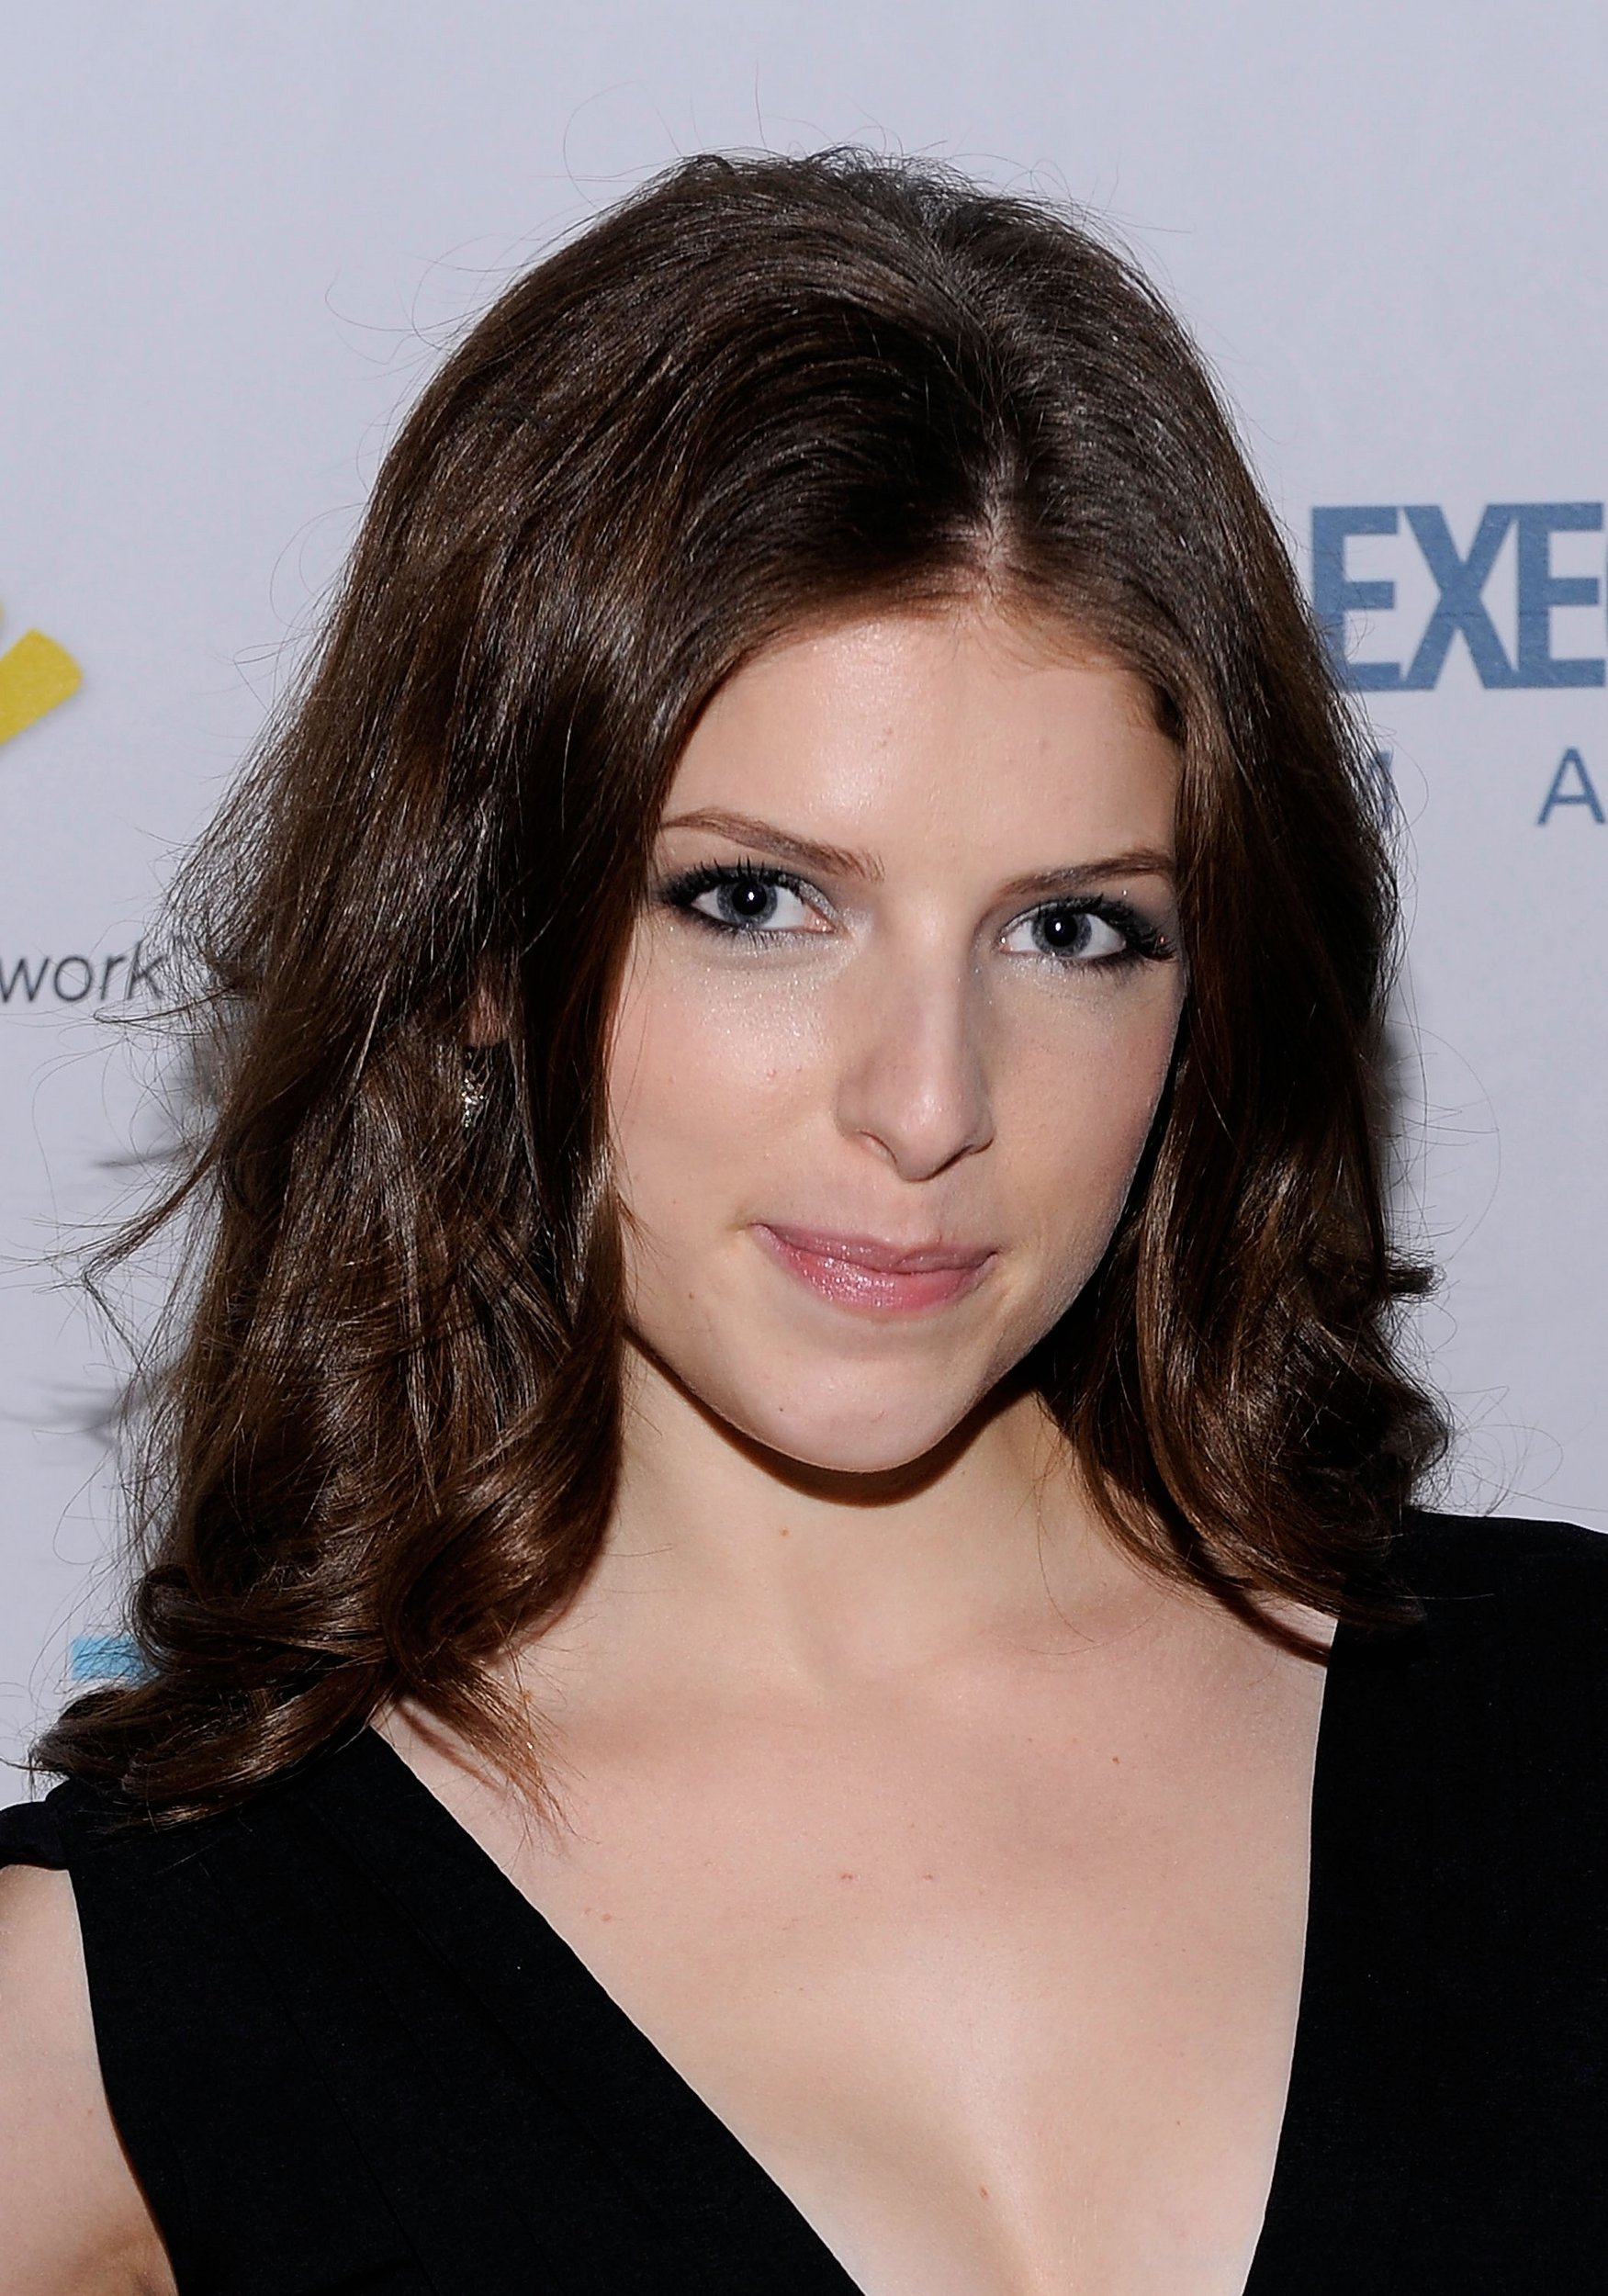 Anna kendrick the last five years - 1 part 2